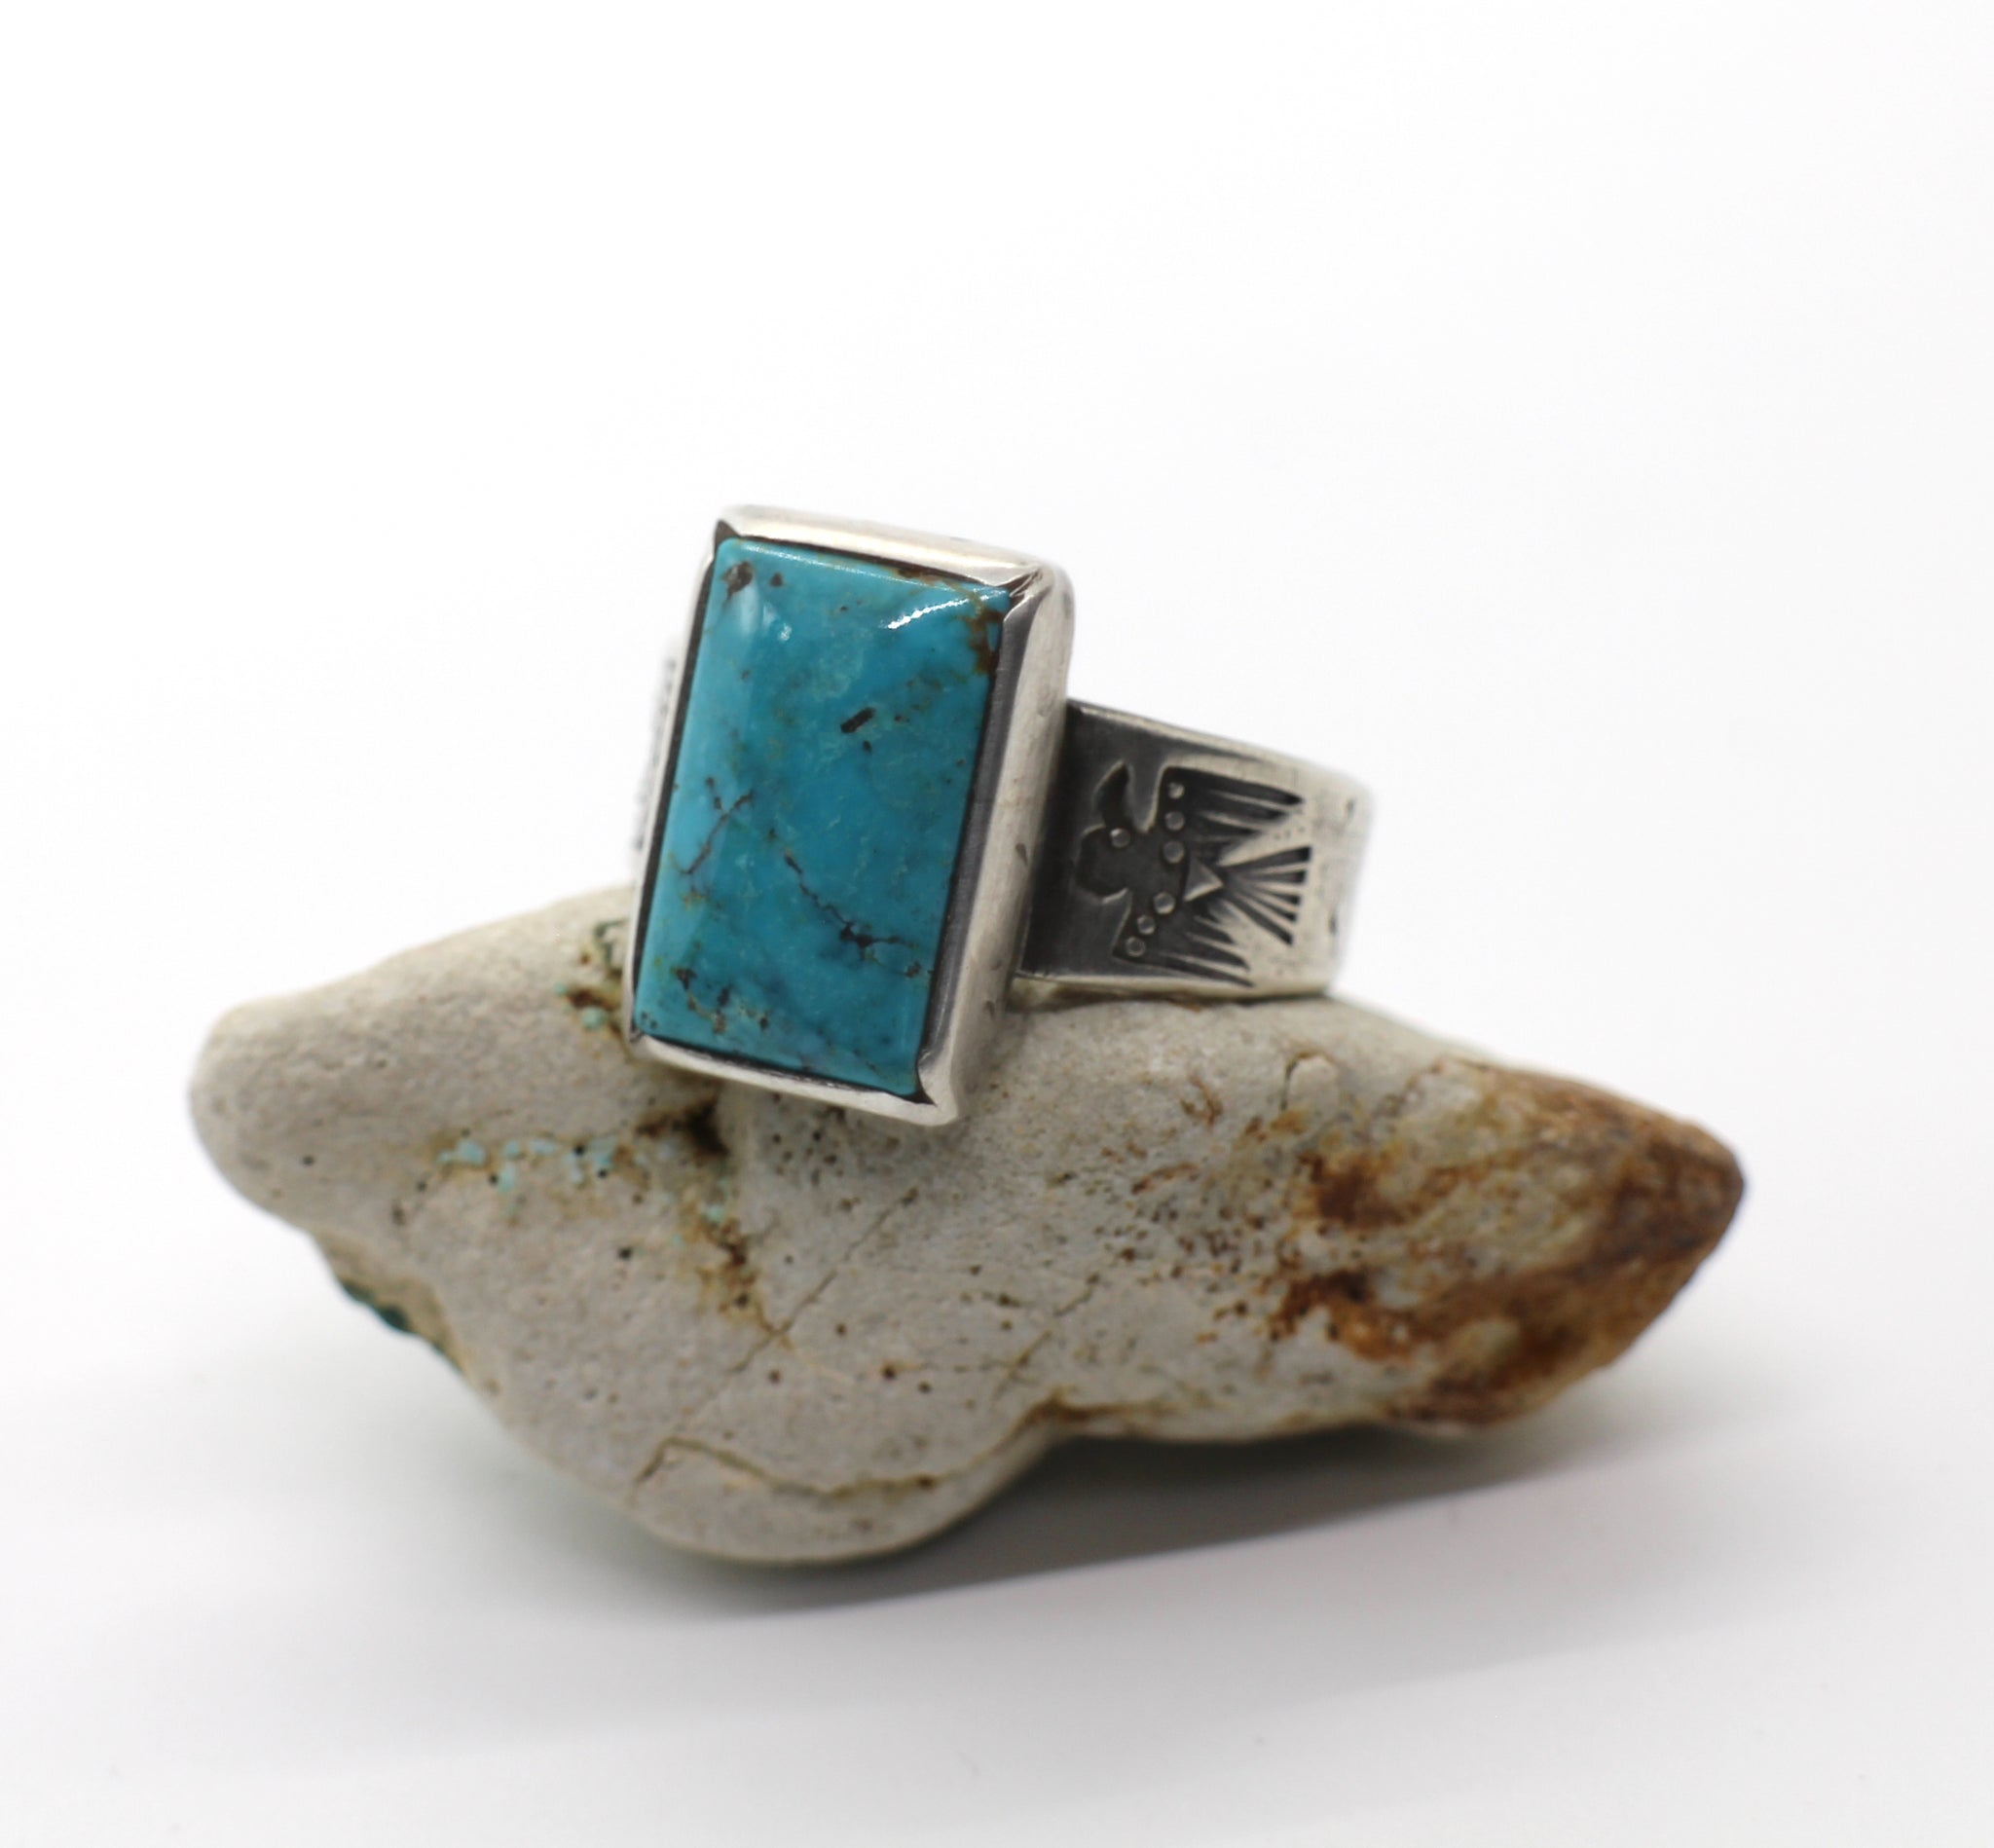 Jesse Robbins Thunderbird Turquoise Ring with Cheyenne Turquoise